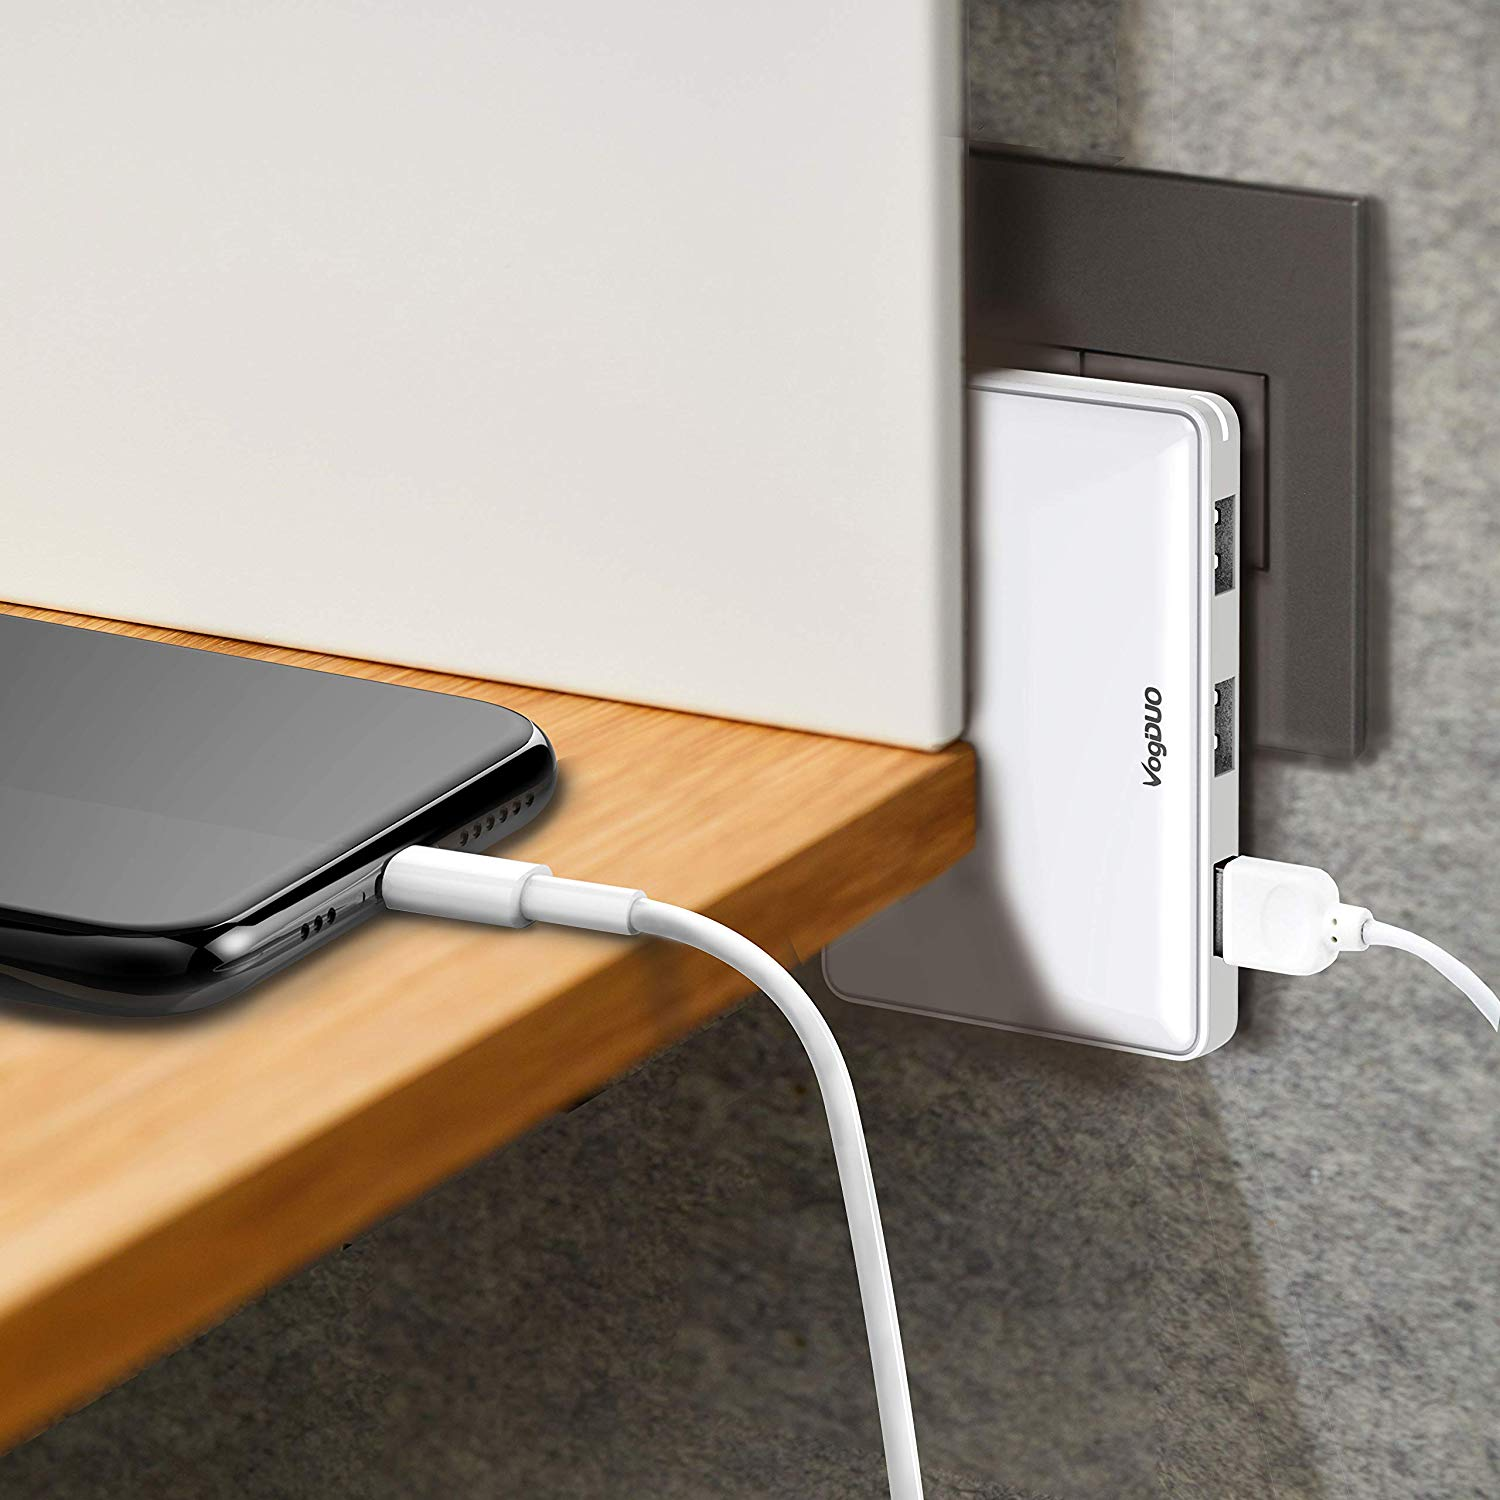 VogDUO Charger Pro, 3 Port USB Travel Wall Charger